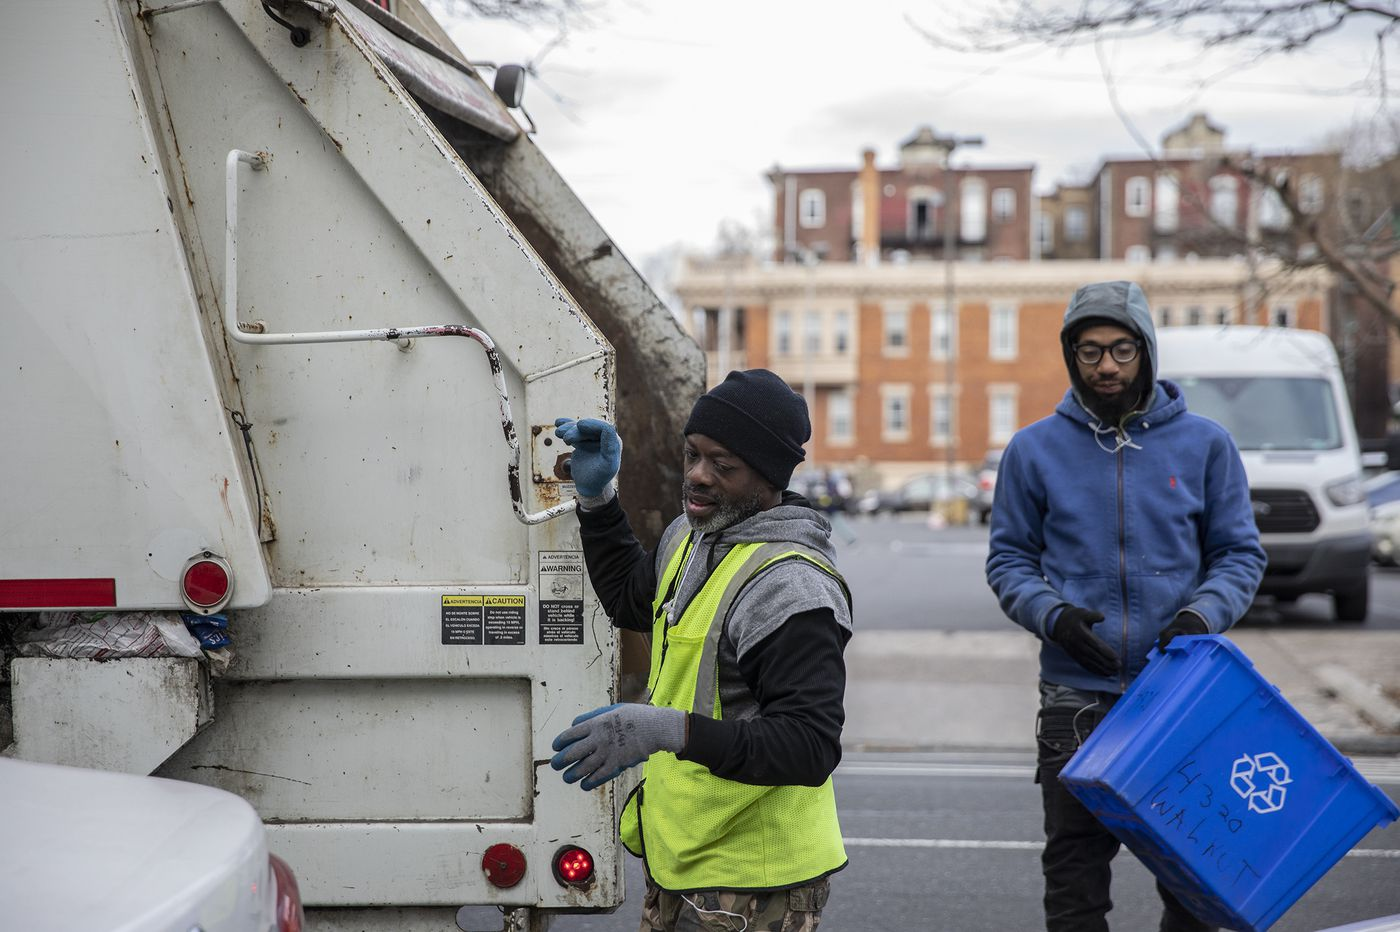 Philly will spend record amount in 2020 to have recycling hauled